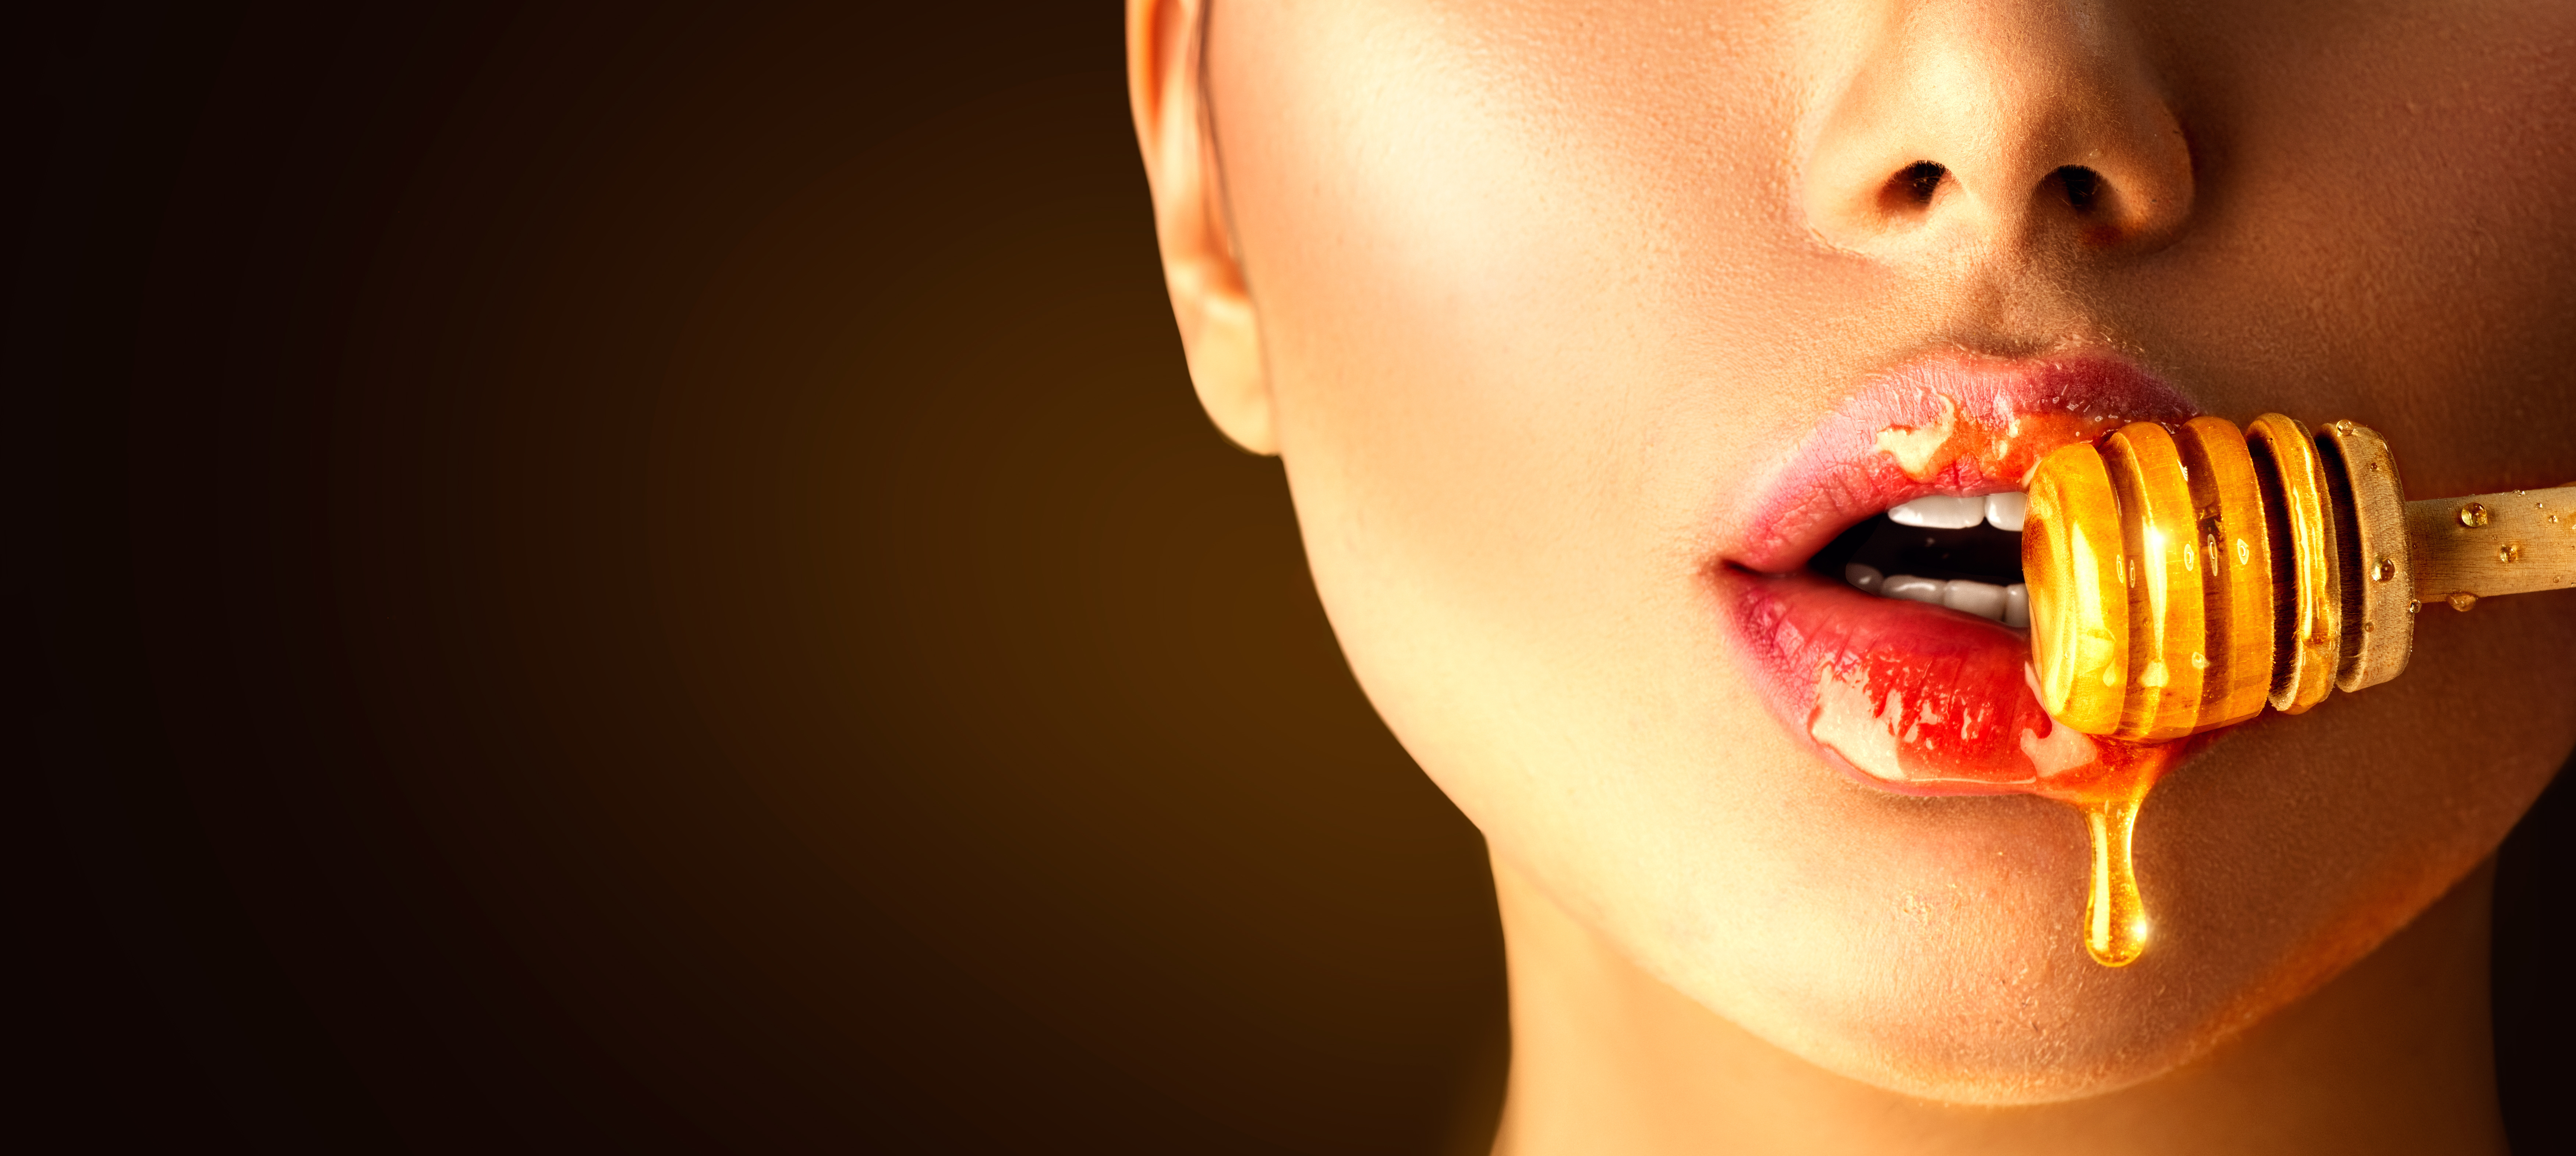 How To Attract Clients | Establishing Yourself as a High-Class Escort